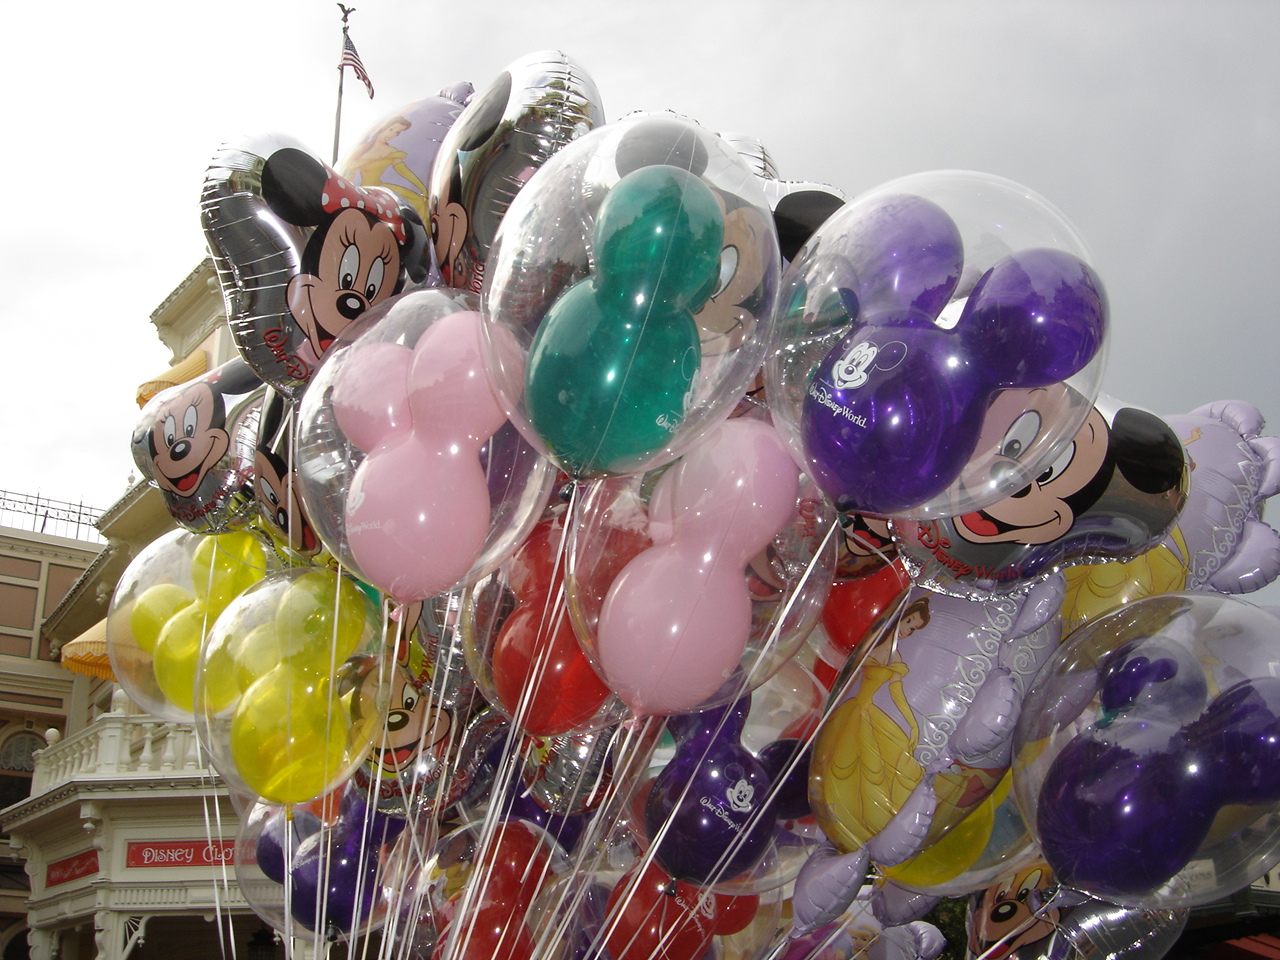 Disney balloons on Main Street, U.S.A.